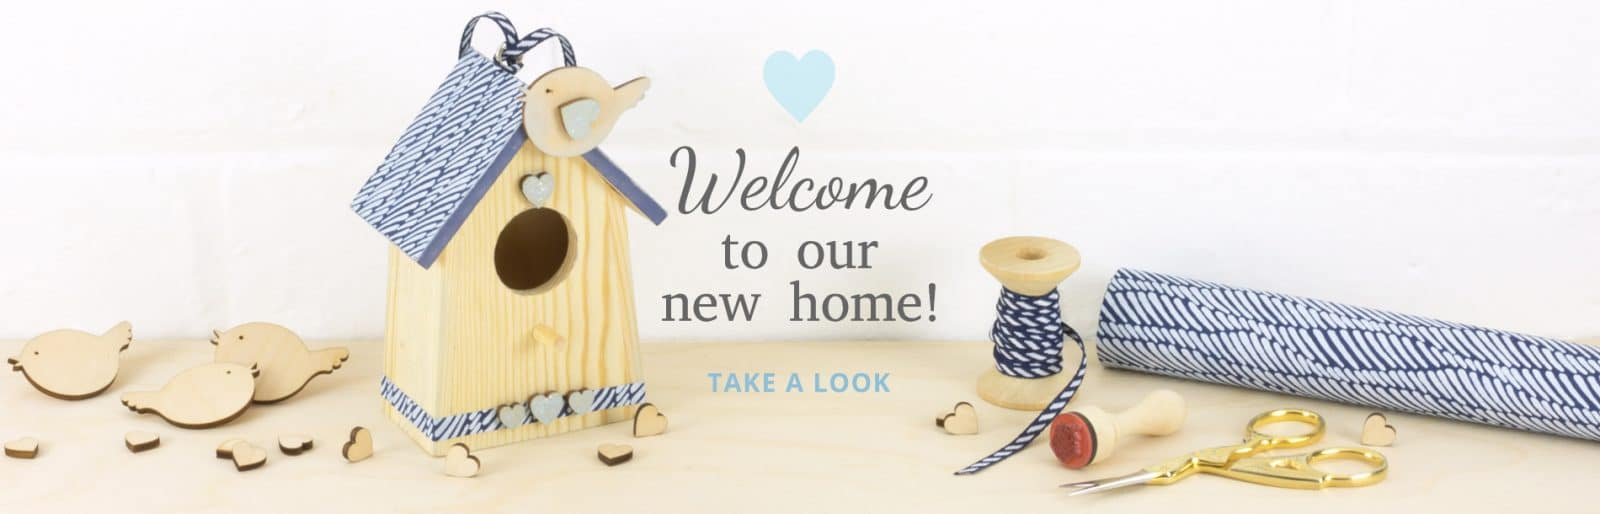 New Home Banner with wooden shapes